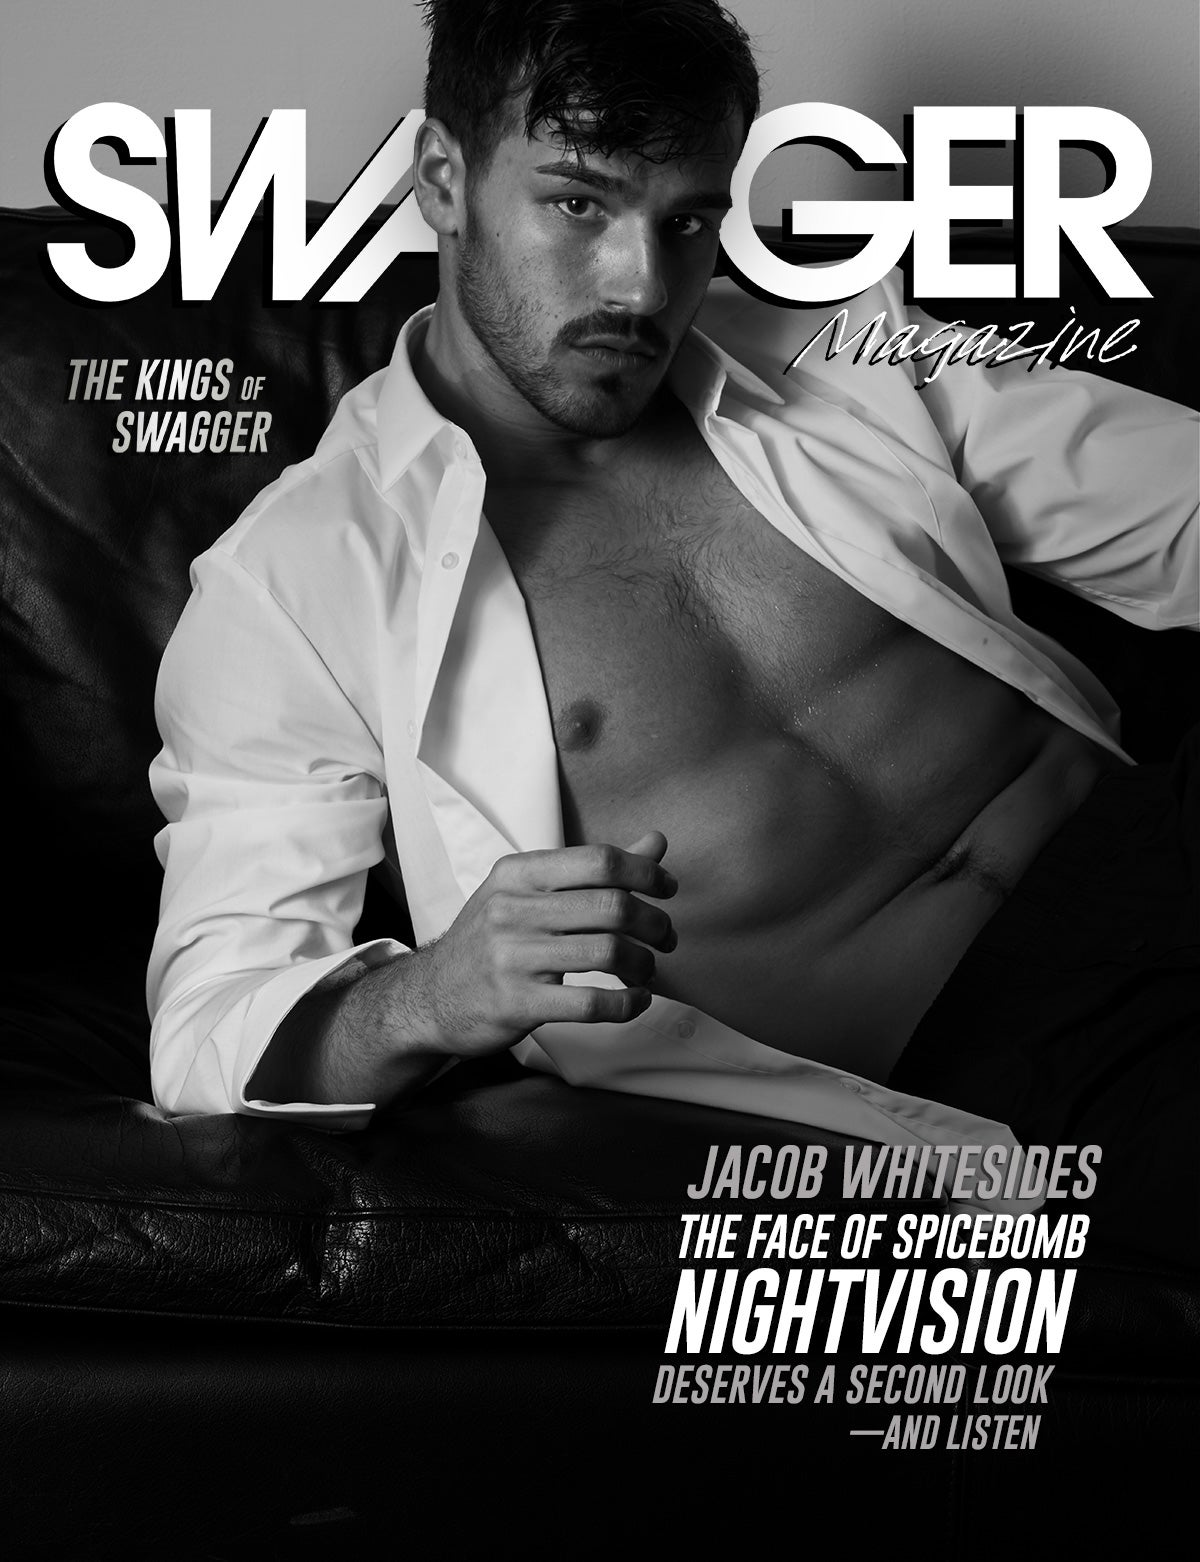 Jacob Whitesides Spicebomb Nightvision SWAGGER COVER